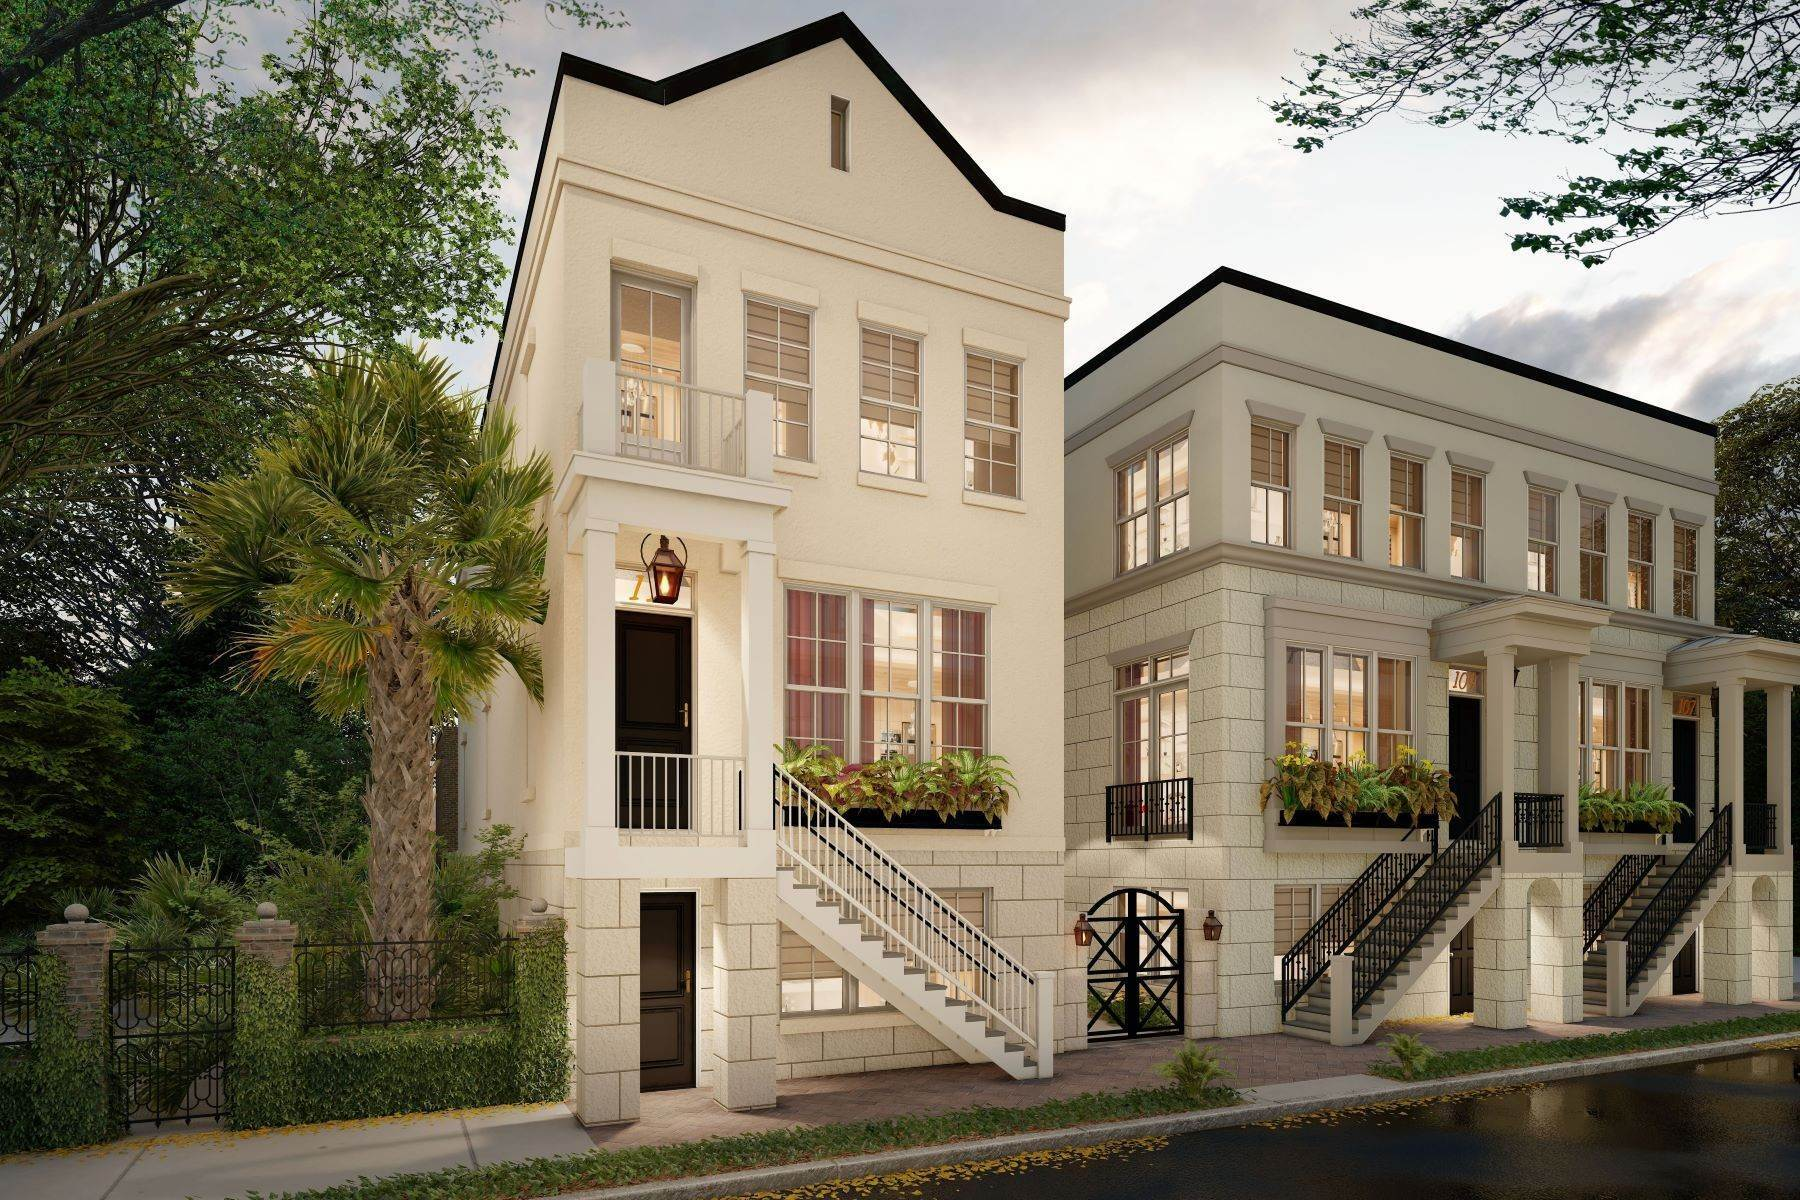 Single Family Homes for Sale at One Of Three Incredible New Construction Townhouses In The Historic District 111 E Gordon Street Savannah, Georgia 31401 United States